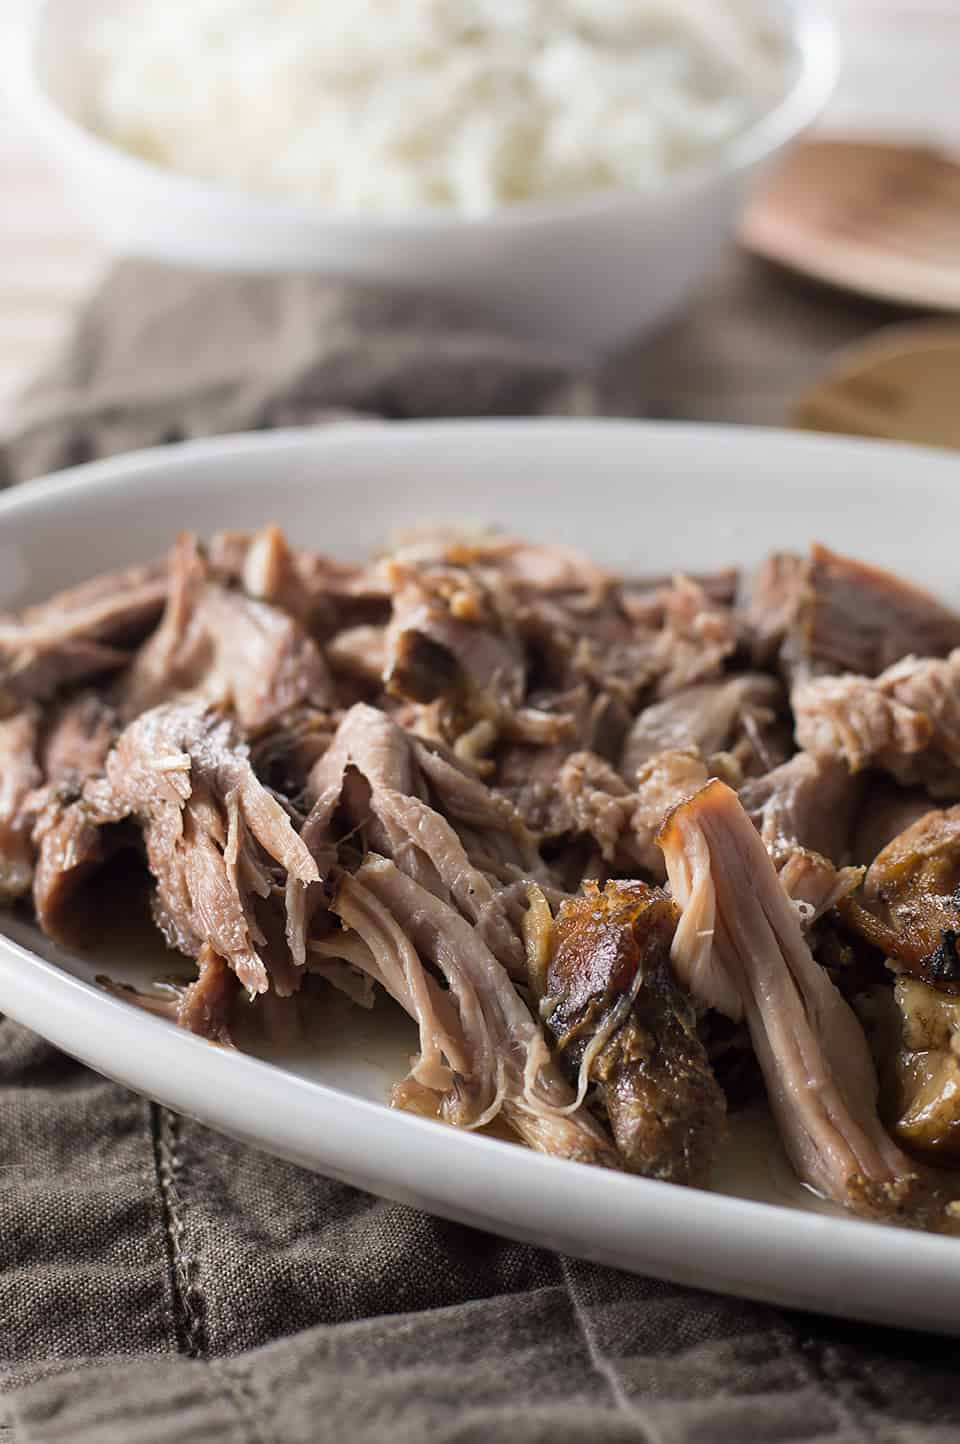 Easy Slow Cooker Kalua Pig looking tender and delicious and served in a big white plate on a table with another side dish blurrred in the background